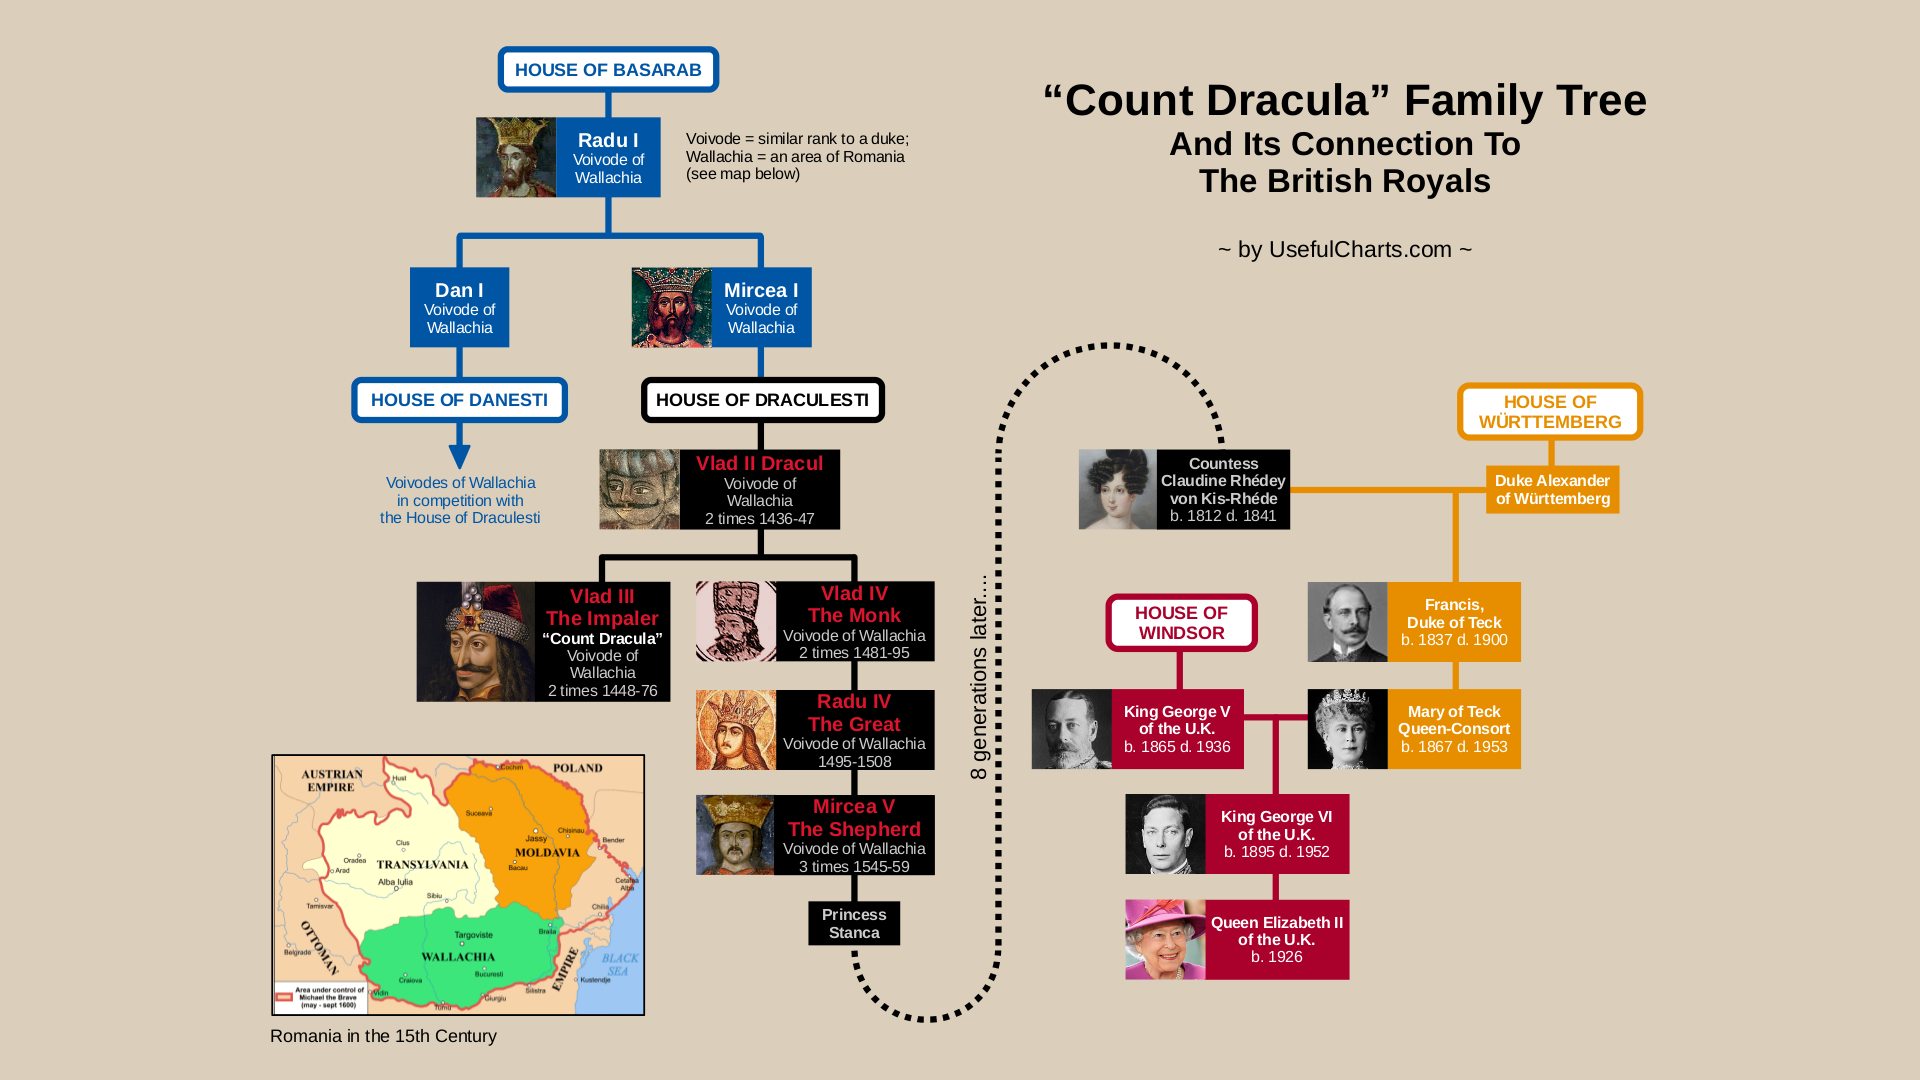 How Queen Elizabeth is related to Count Dracula (Vlad the